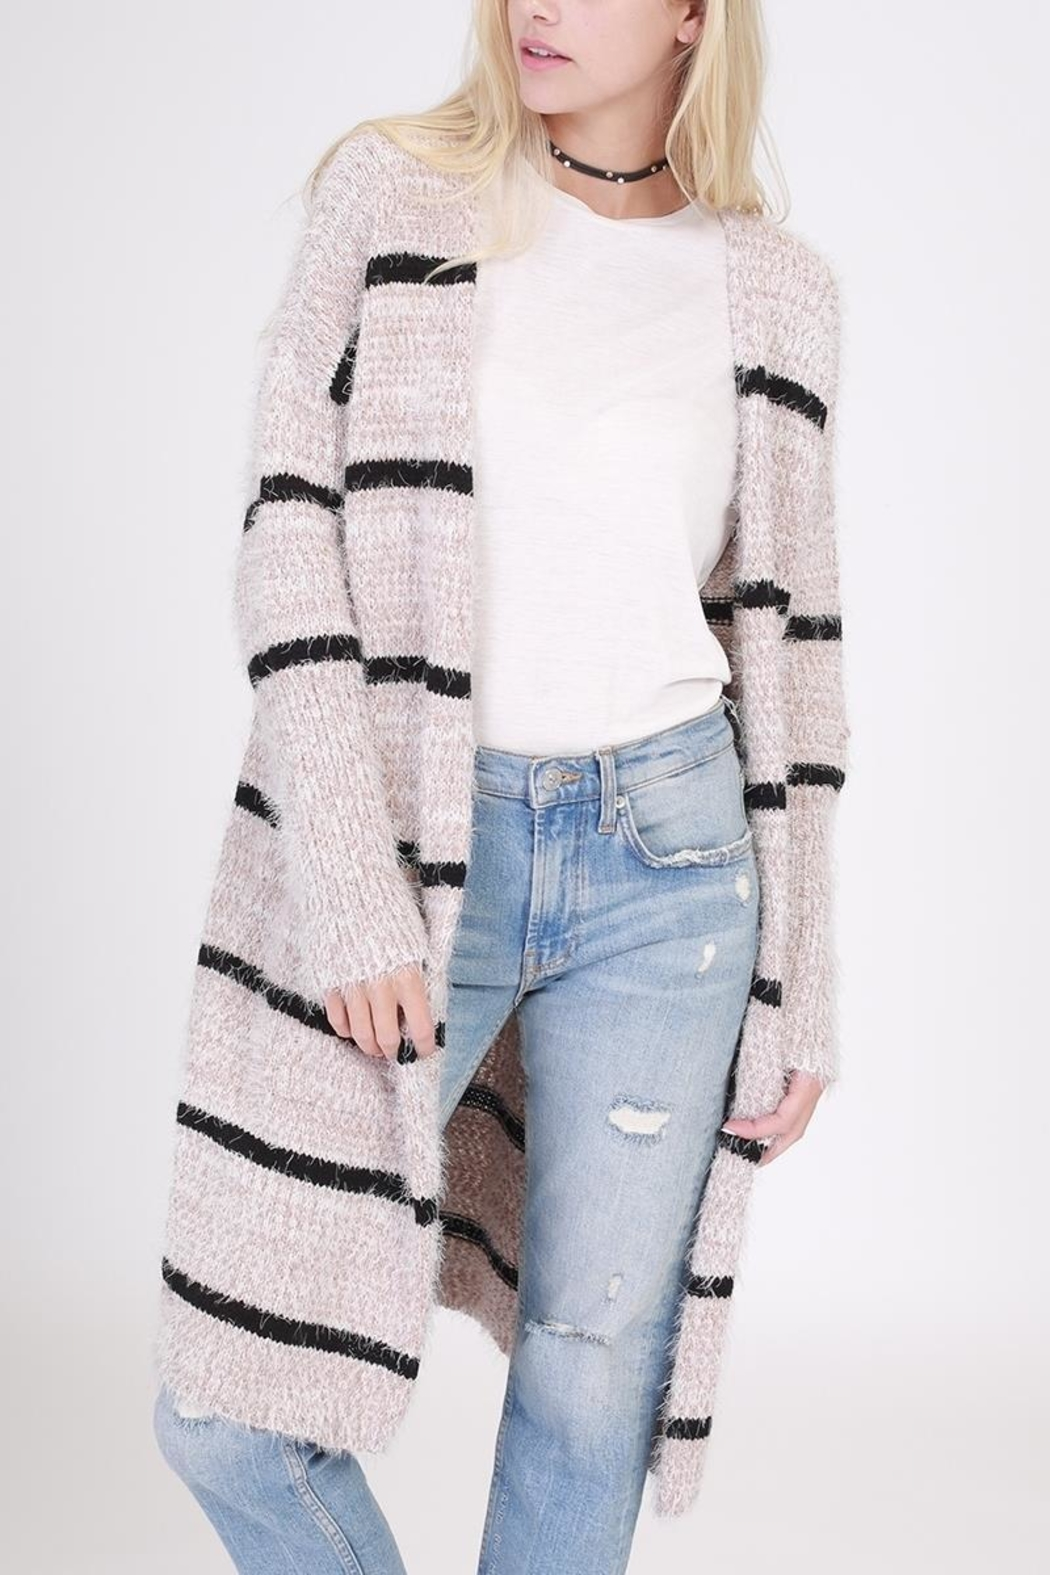 onetheland Stripe Furry Cardigan - Main Image